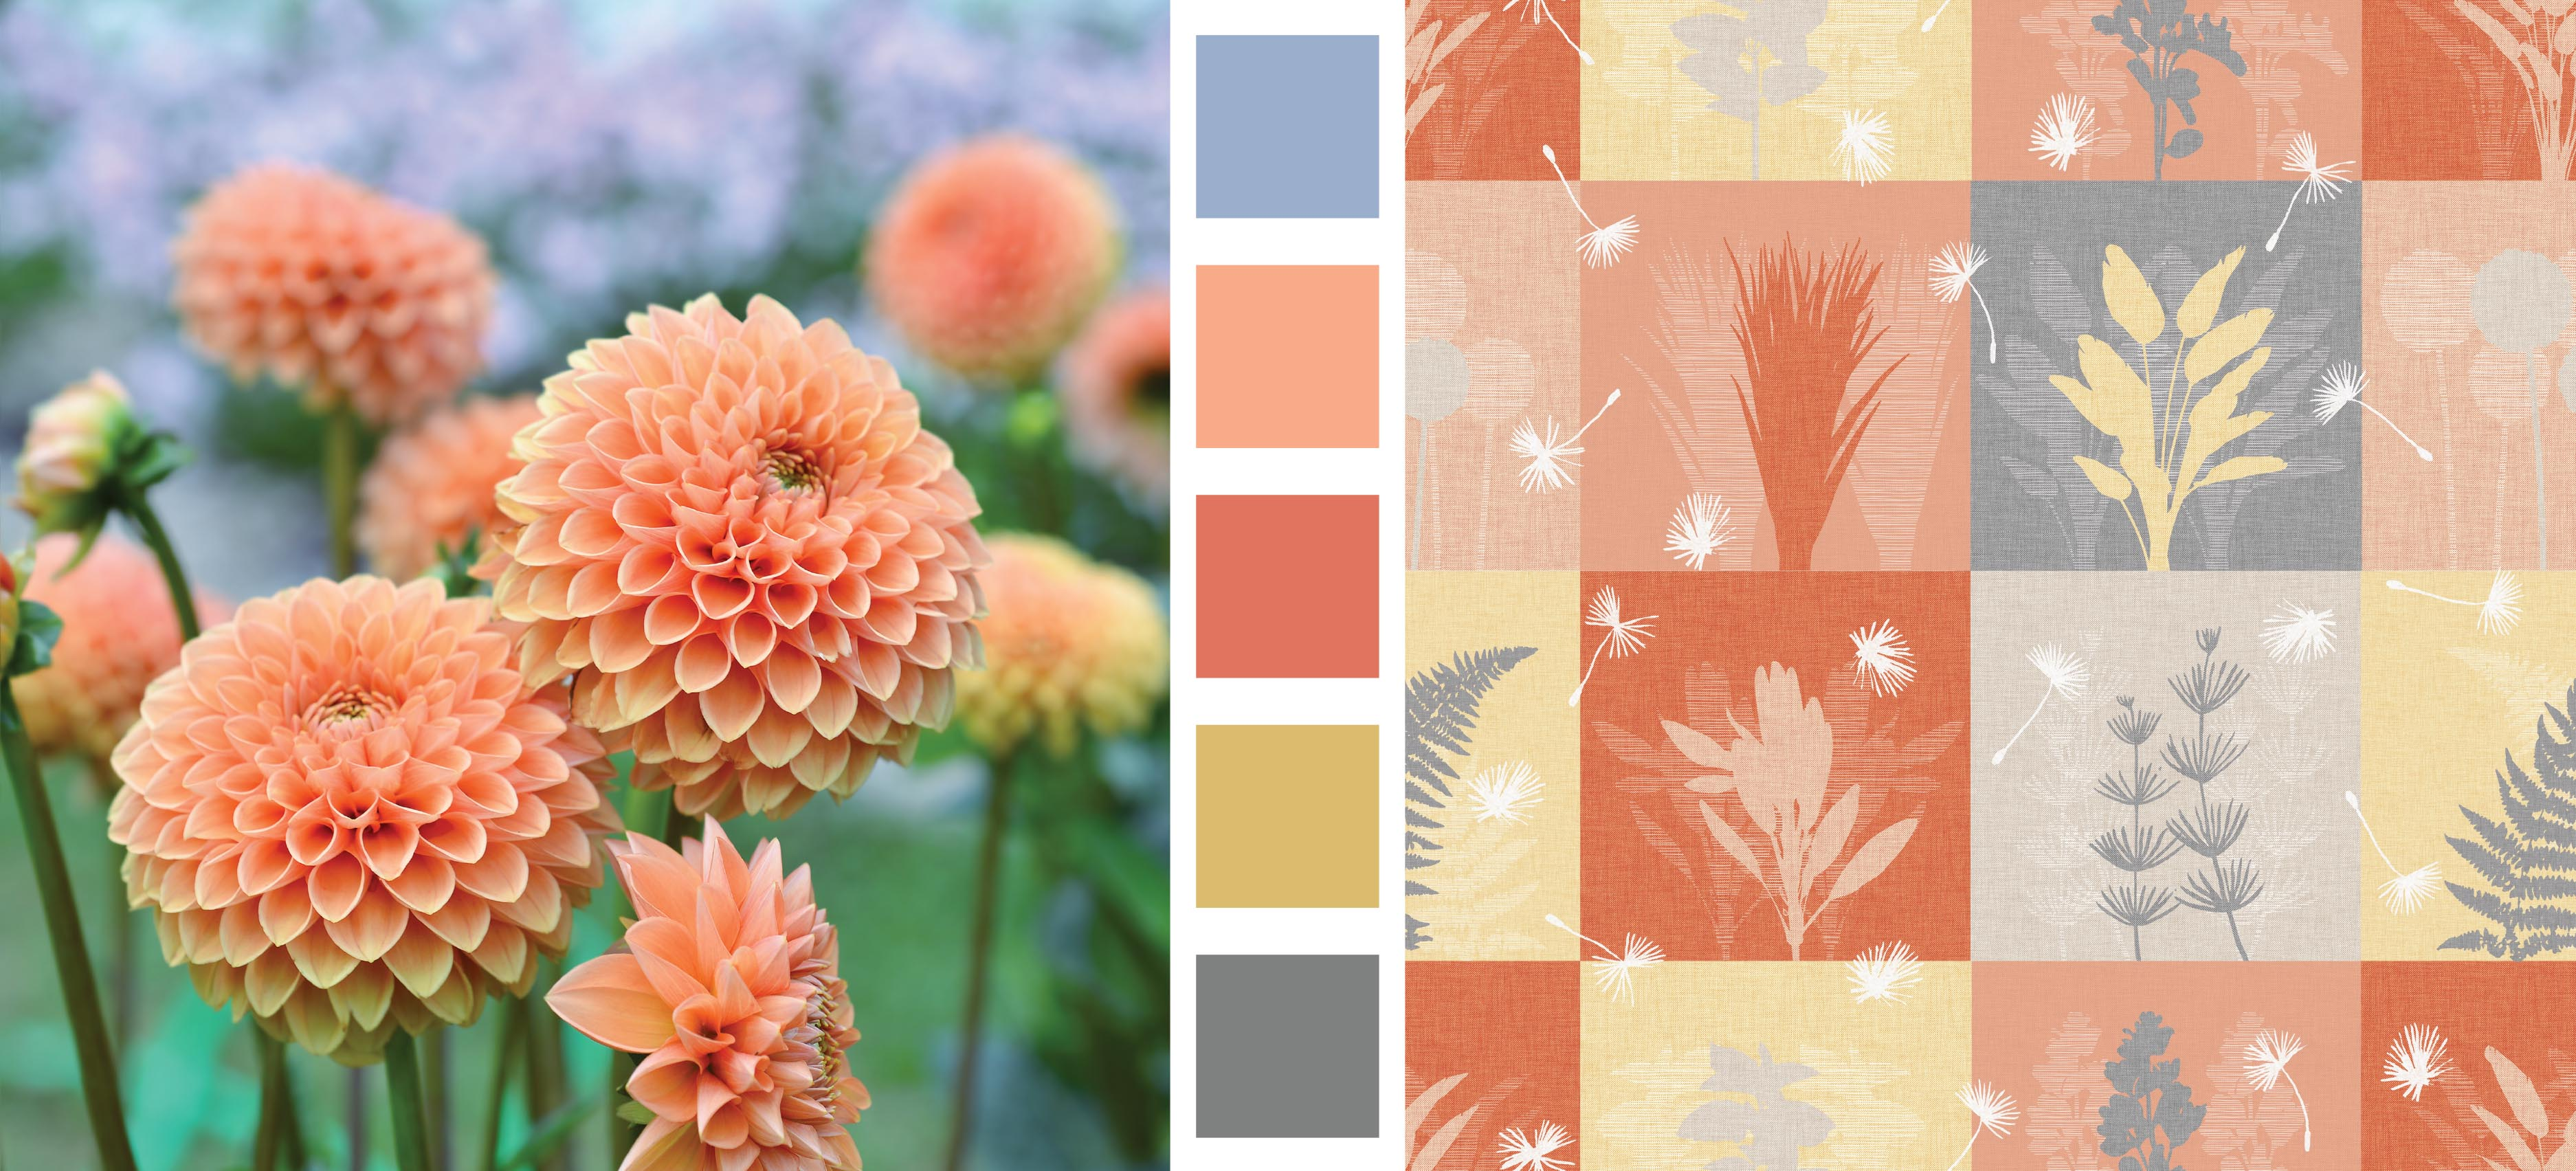 Earth Day Design and Color Inspiration Floral Squares